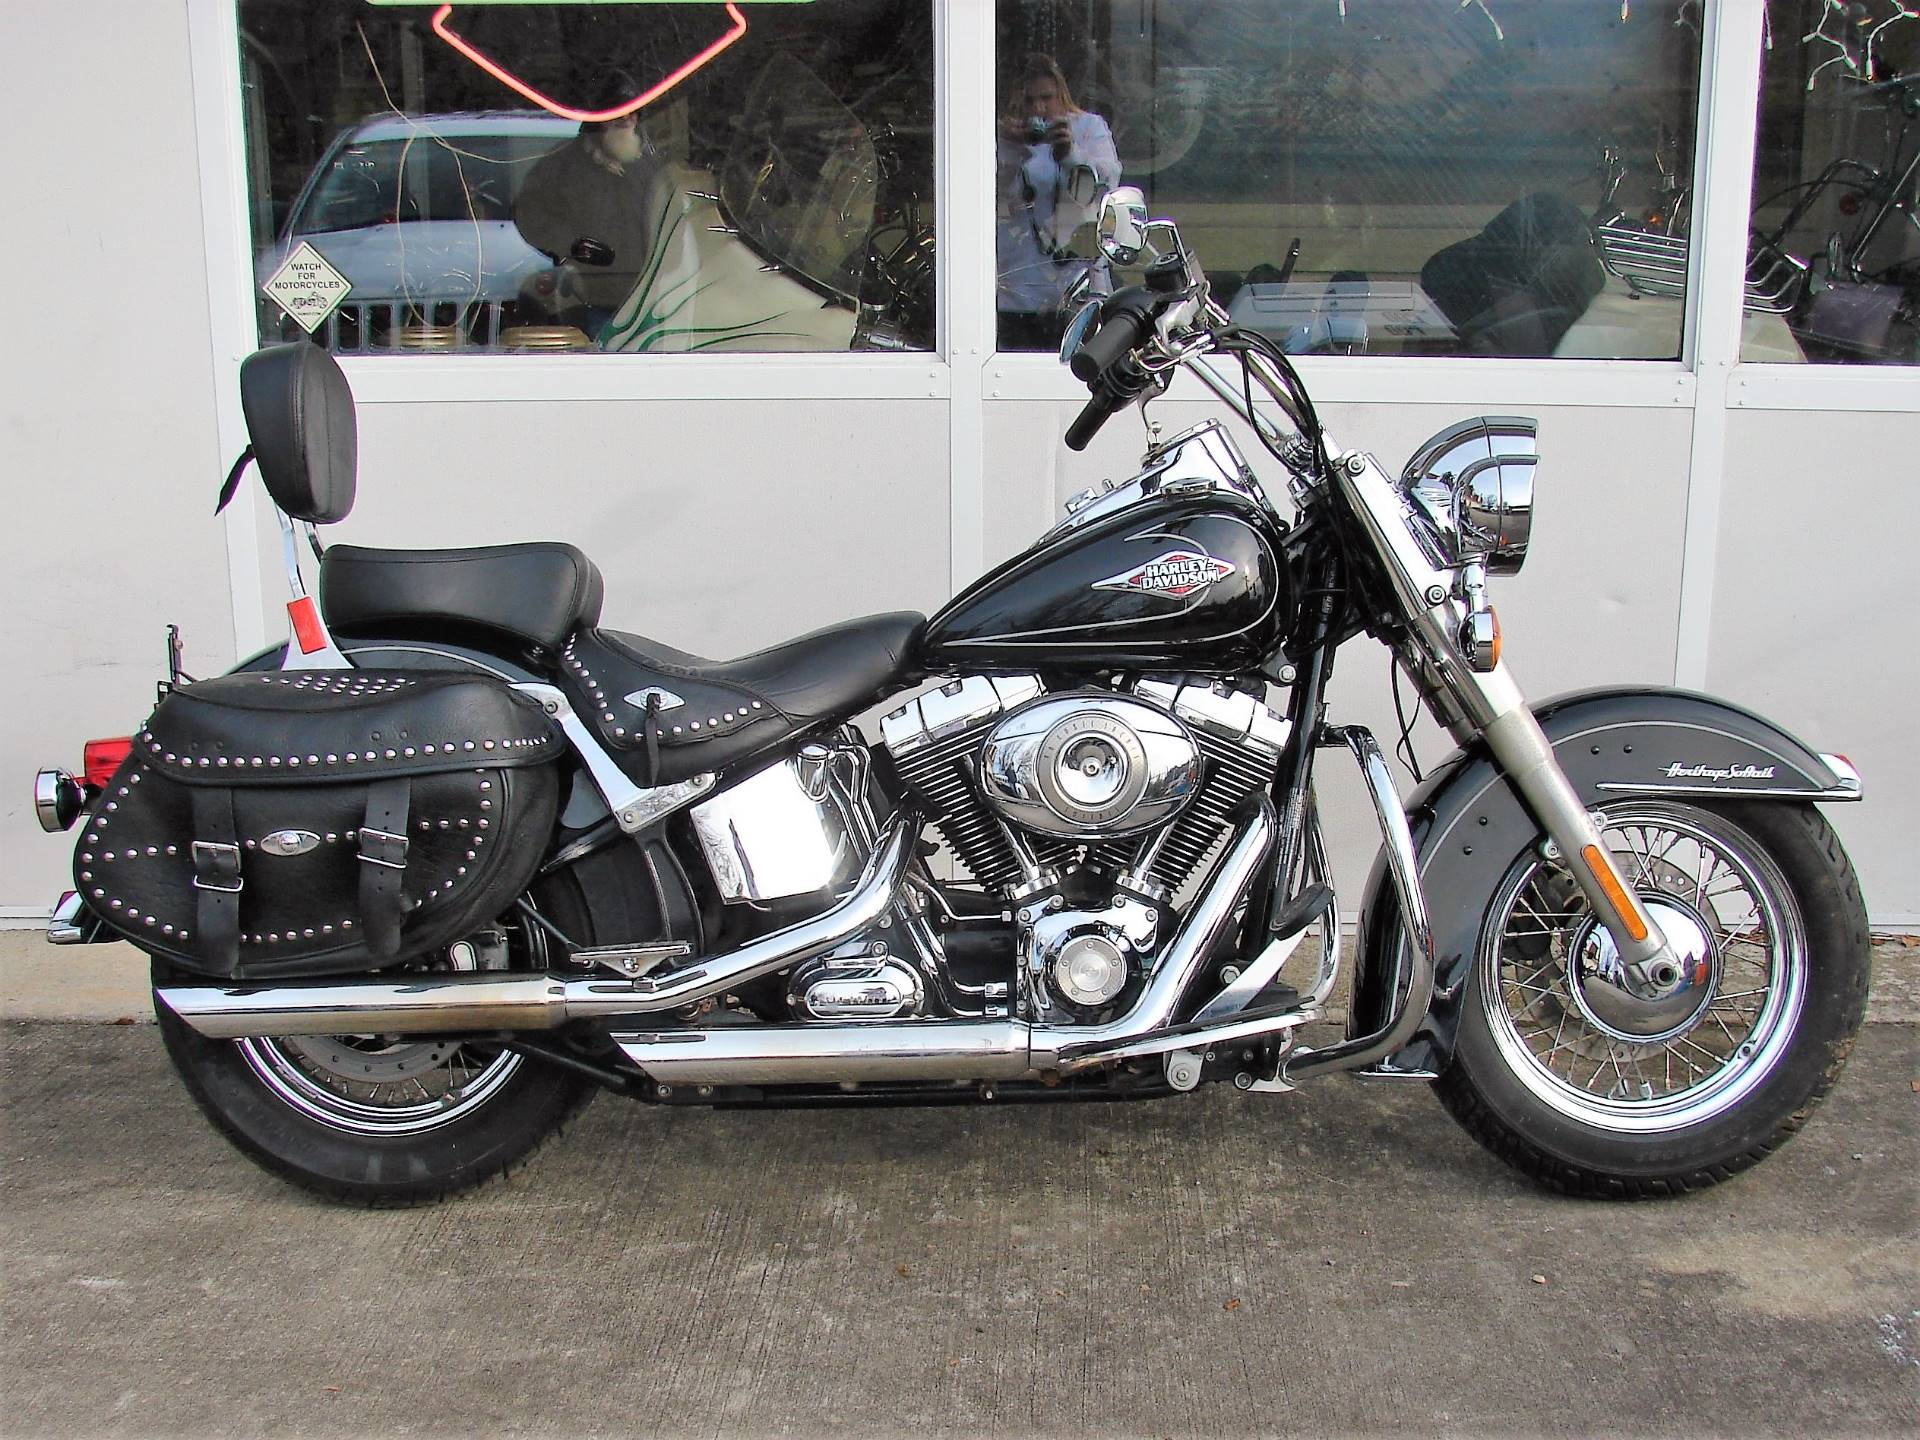 2011 Harley-Davidson FLSTC Heritage Softail in Williamstown, New Jersey - Photo 1